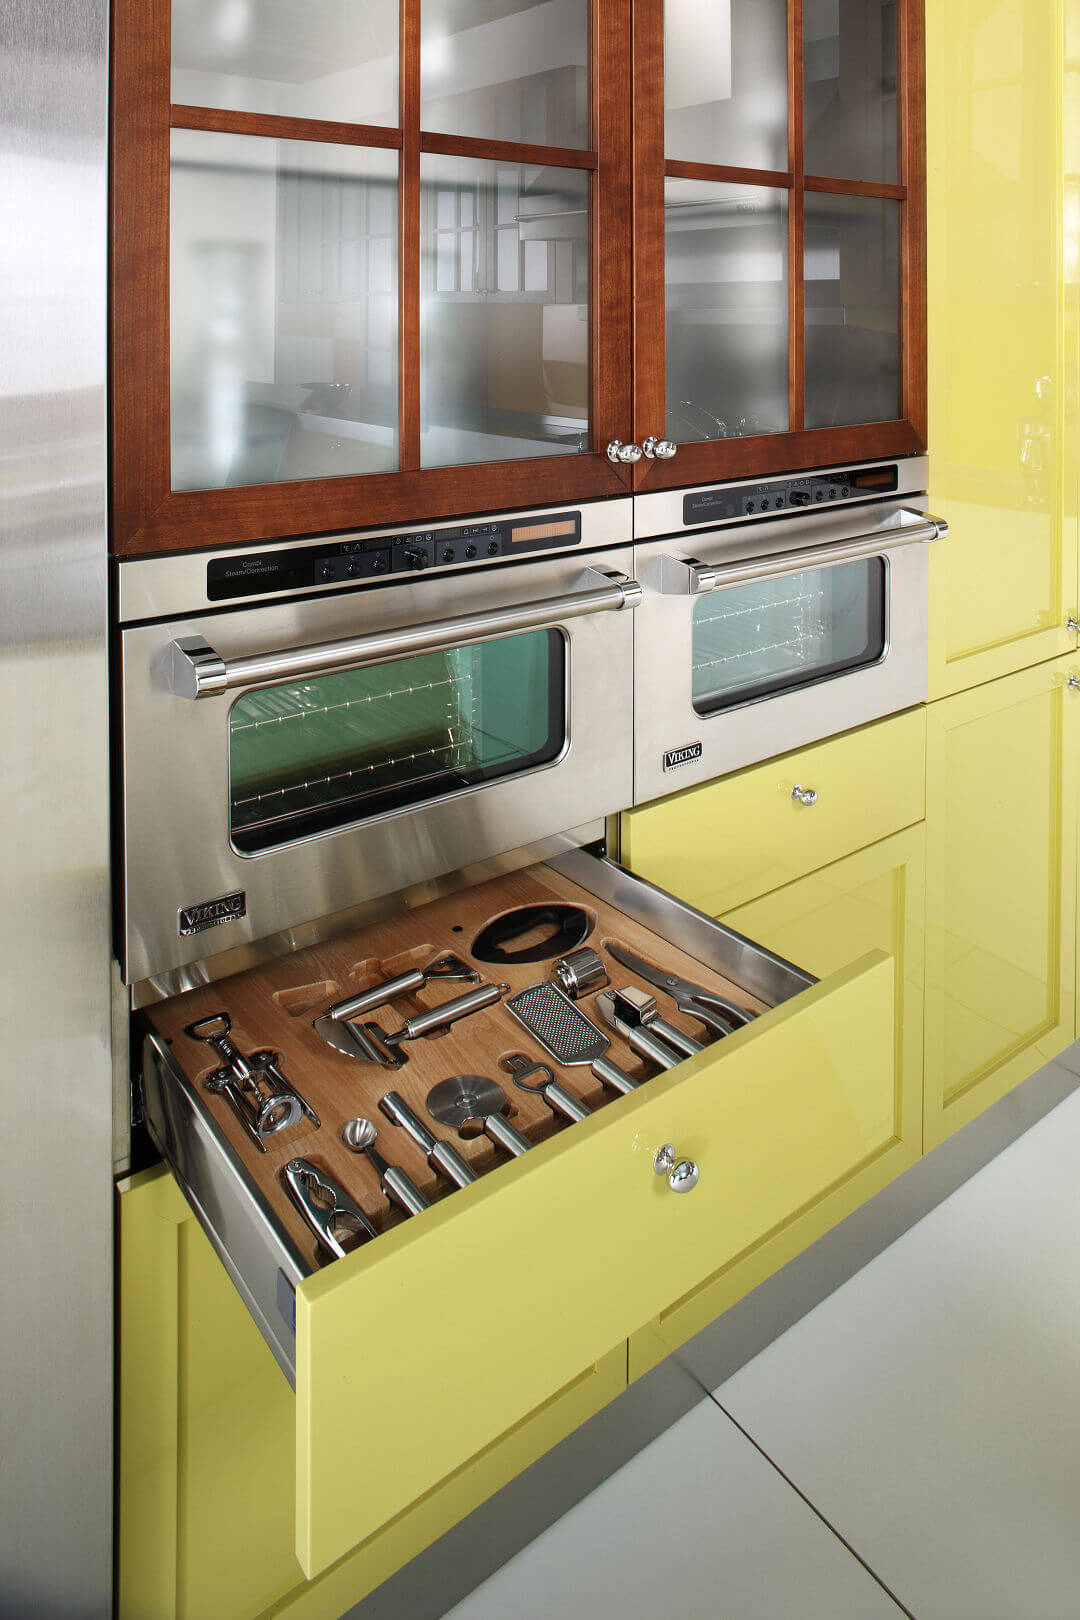 Arca Cucine Italy - Domestic stainless steel kitchens - 14 - Cambridge - Drawer